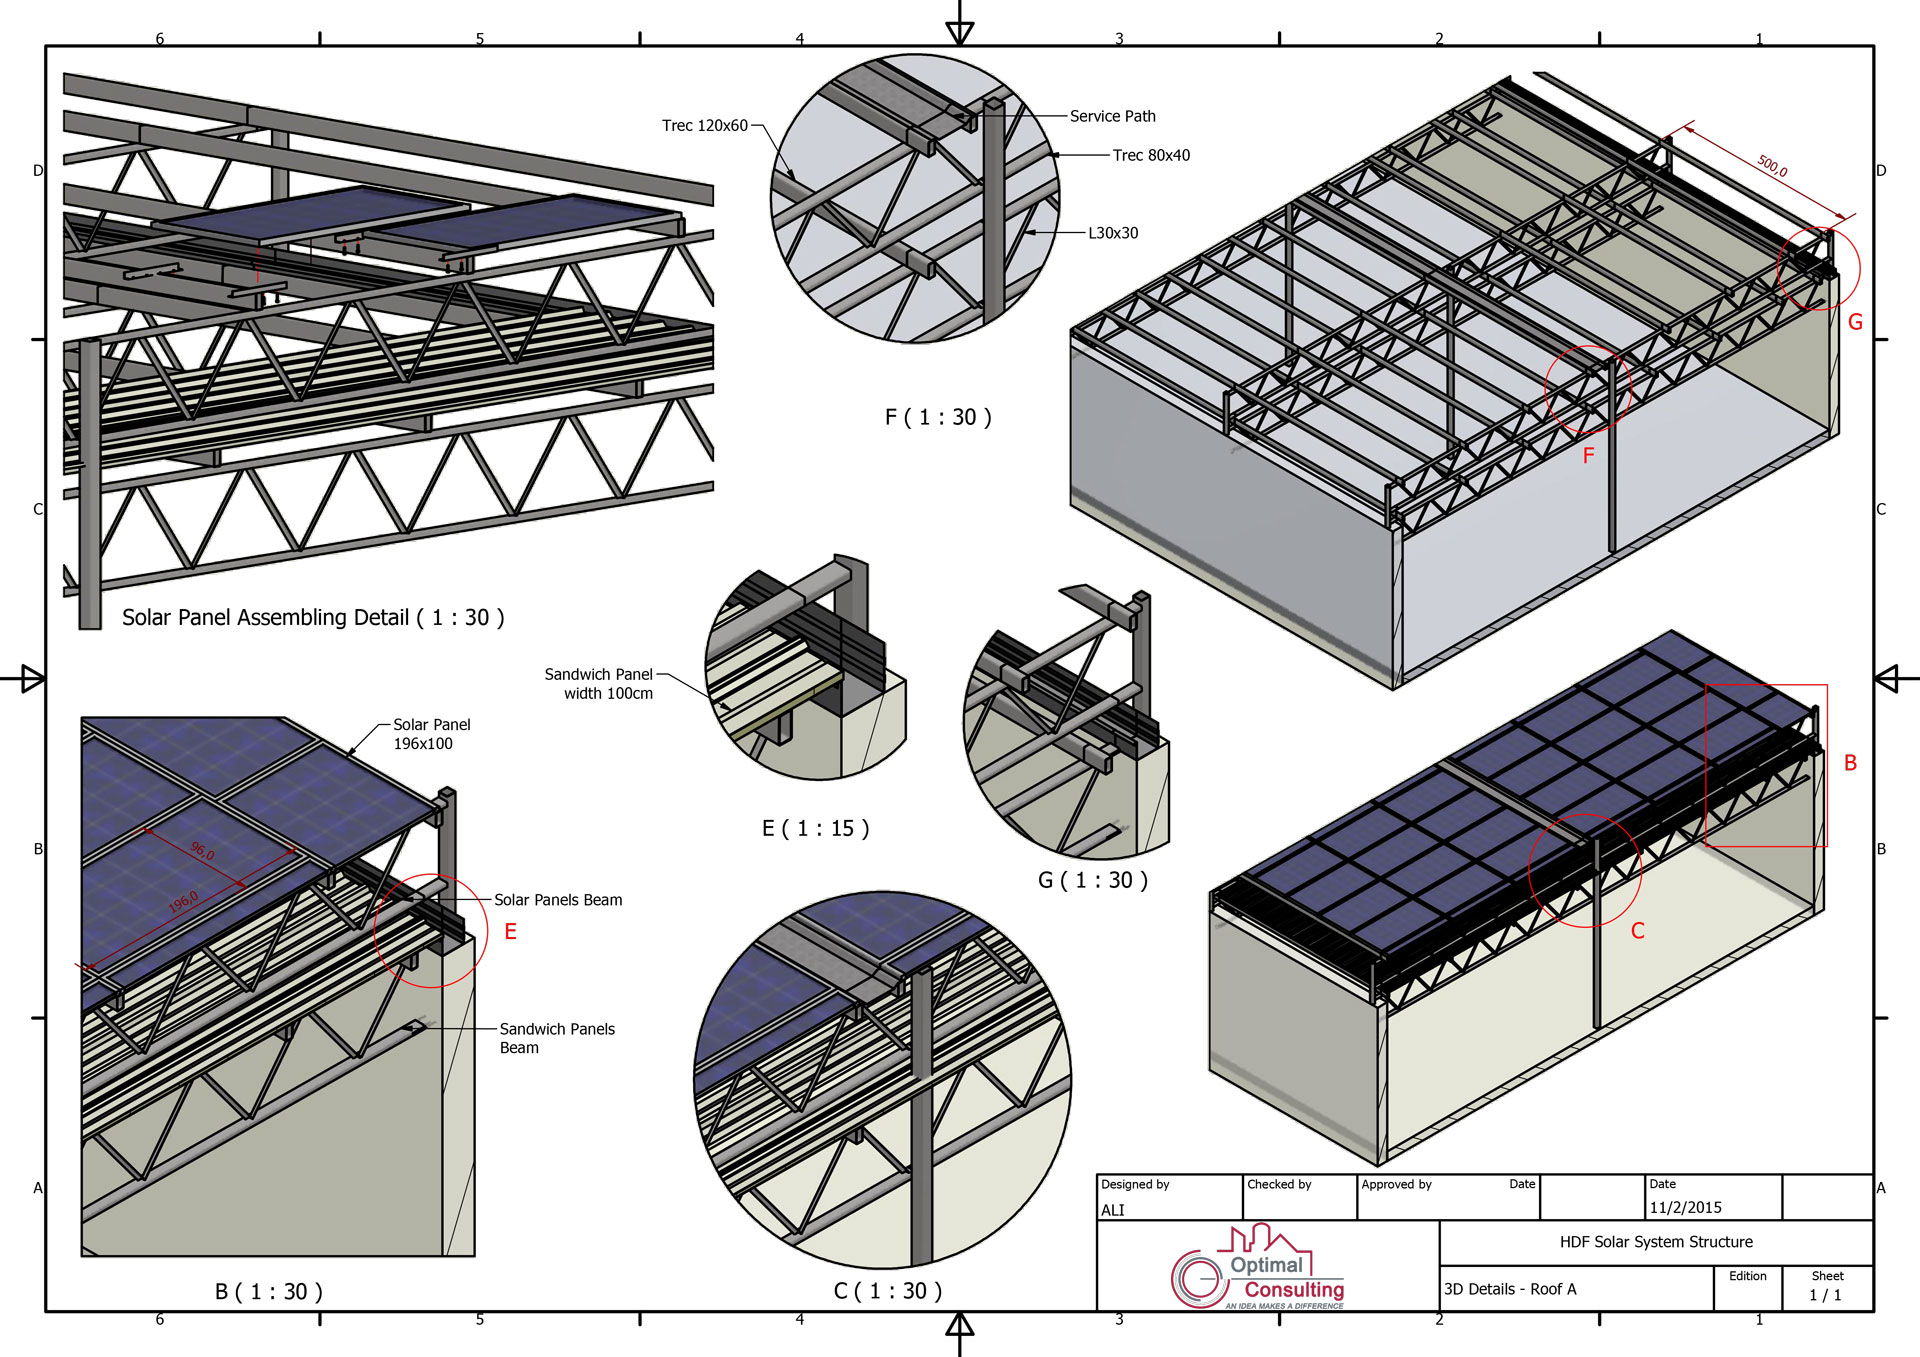 Steel Structure design for Hotel Due Solar System in Beirut, Lebanon.